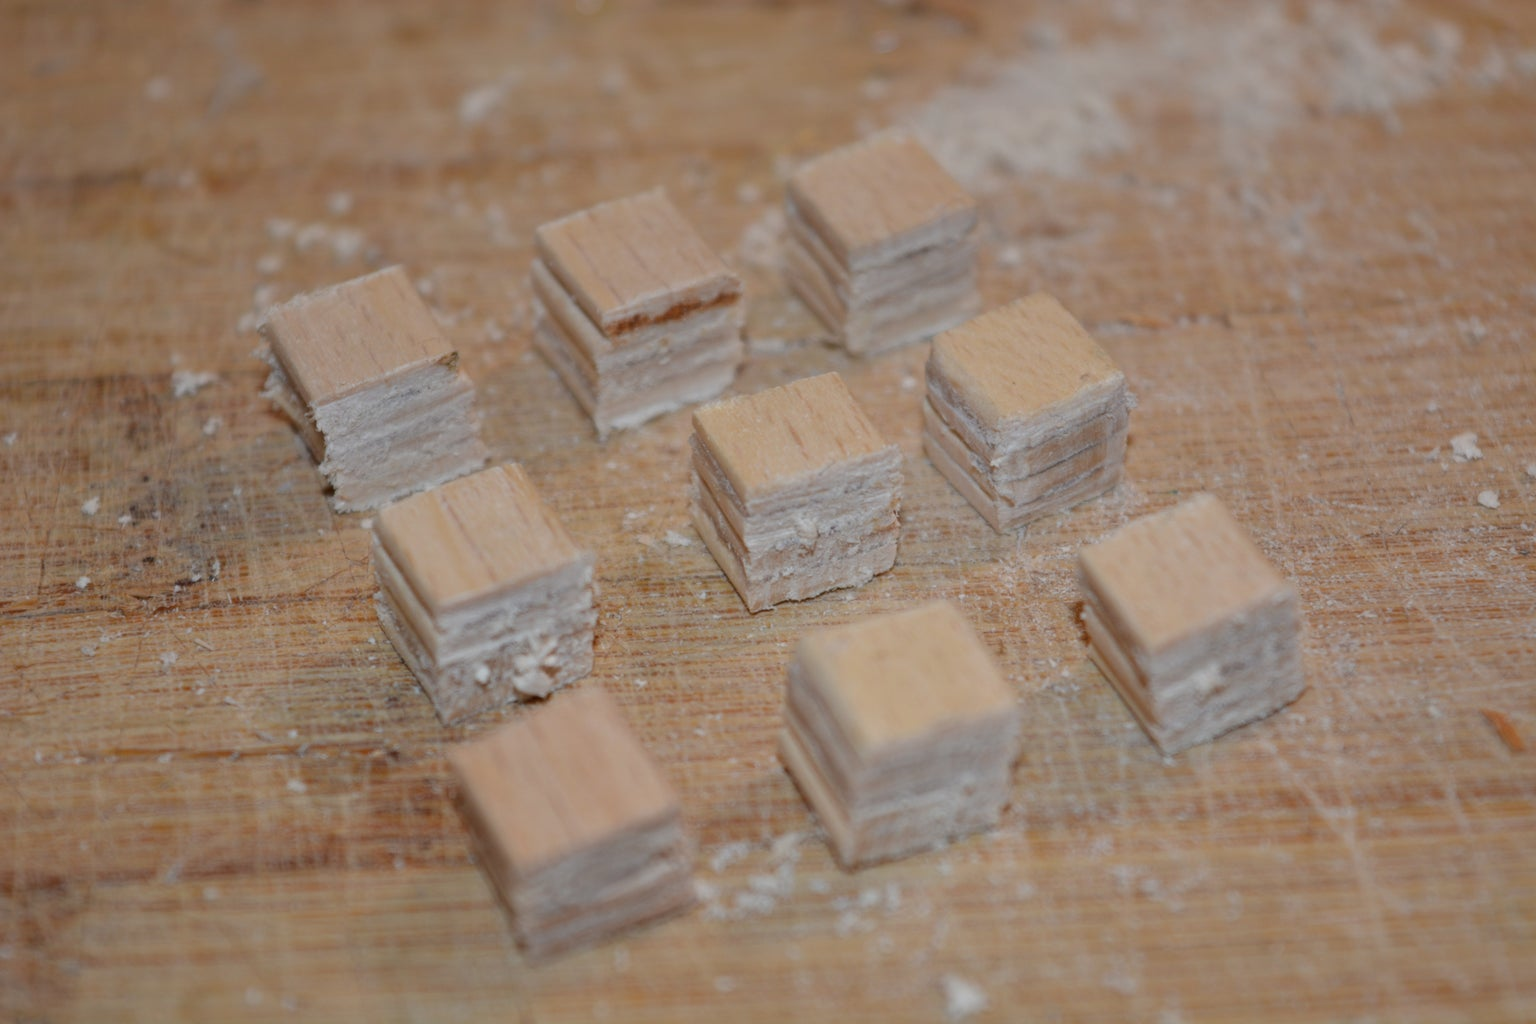 Making Cantilevers/supporters